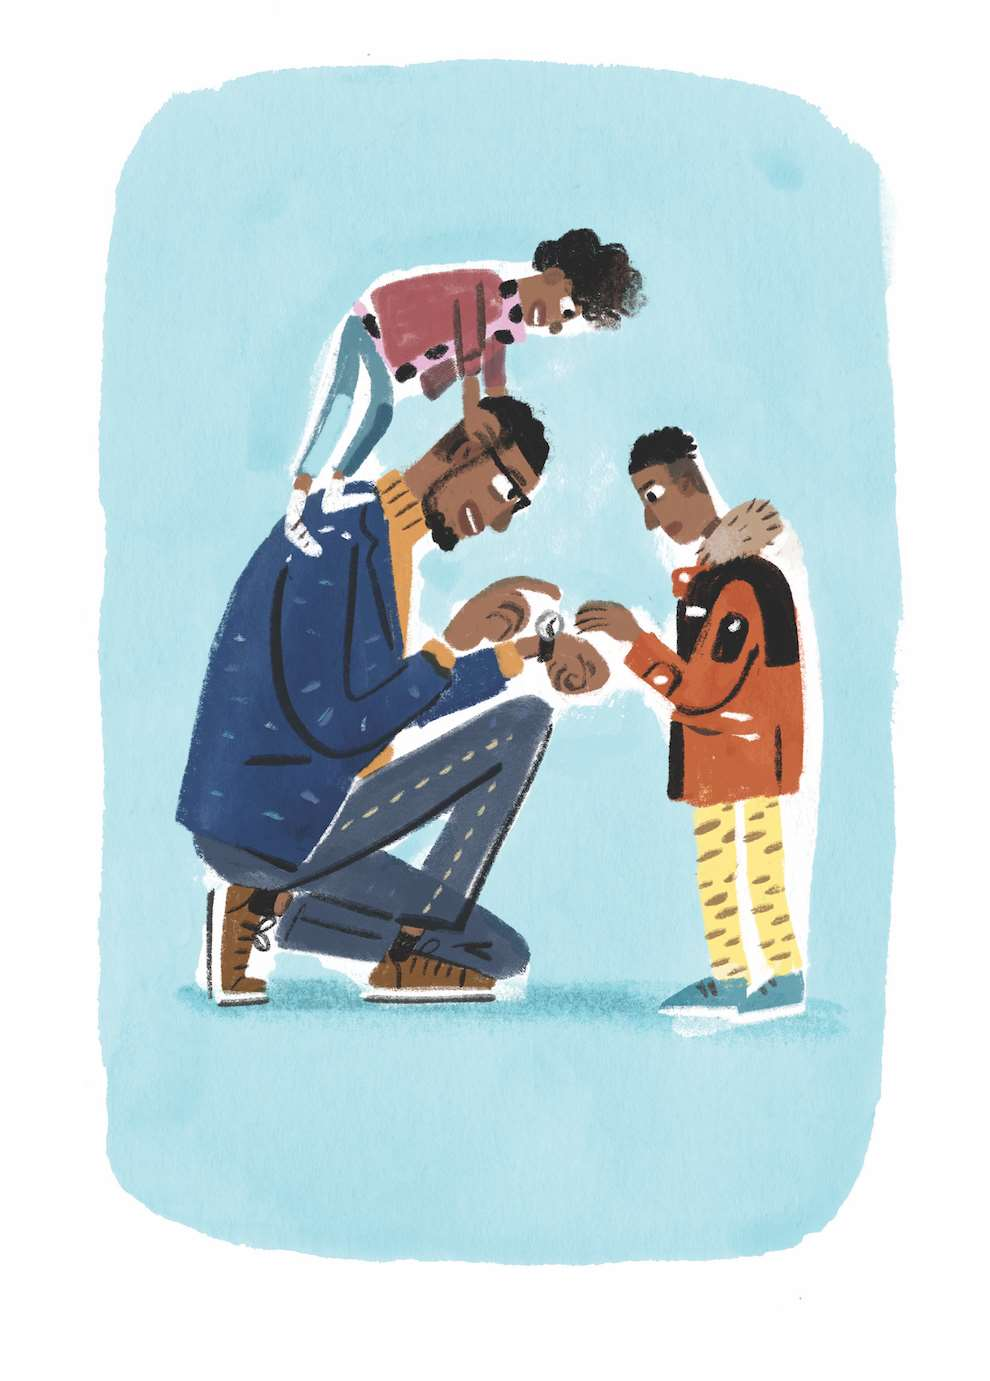 Stephen Collins, Painterly illustration of a dad and kids